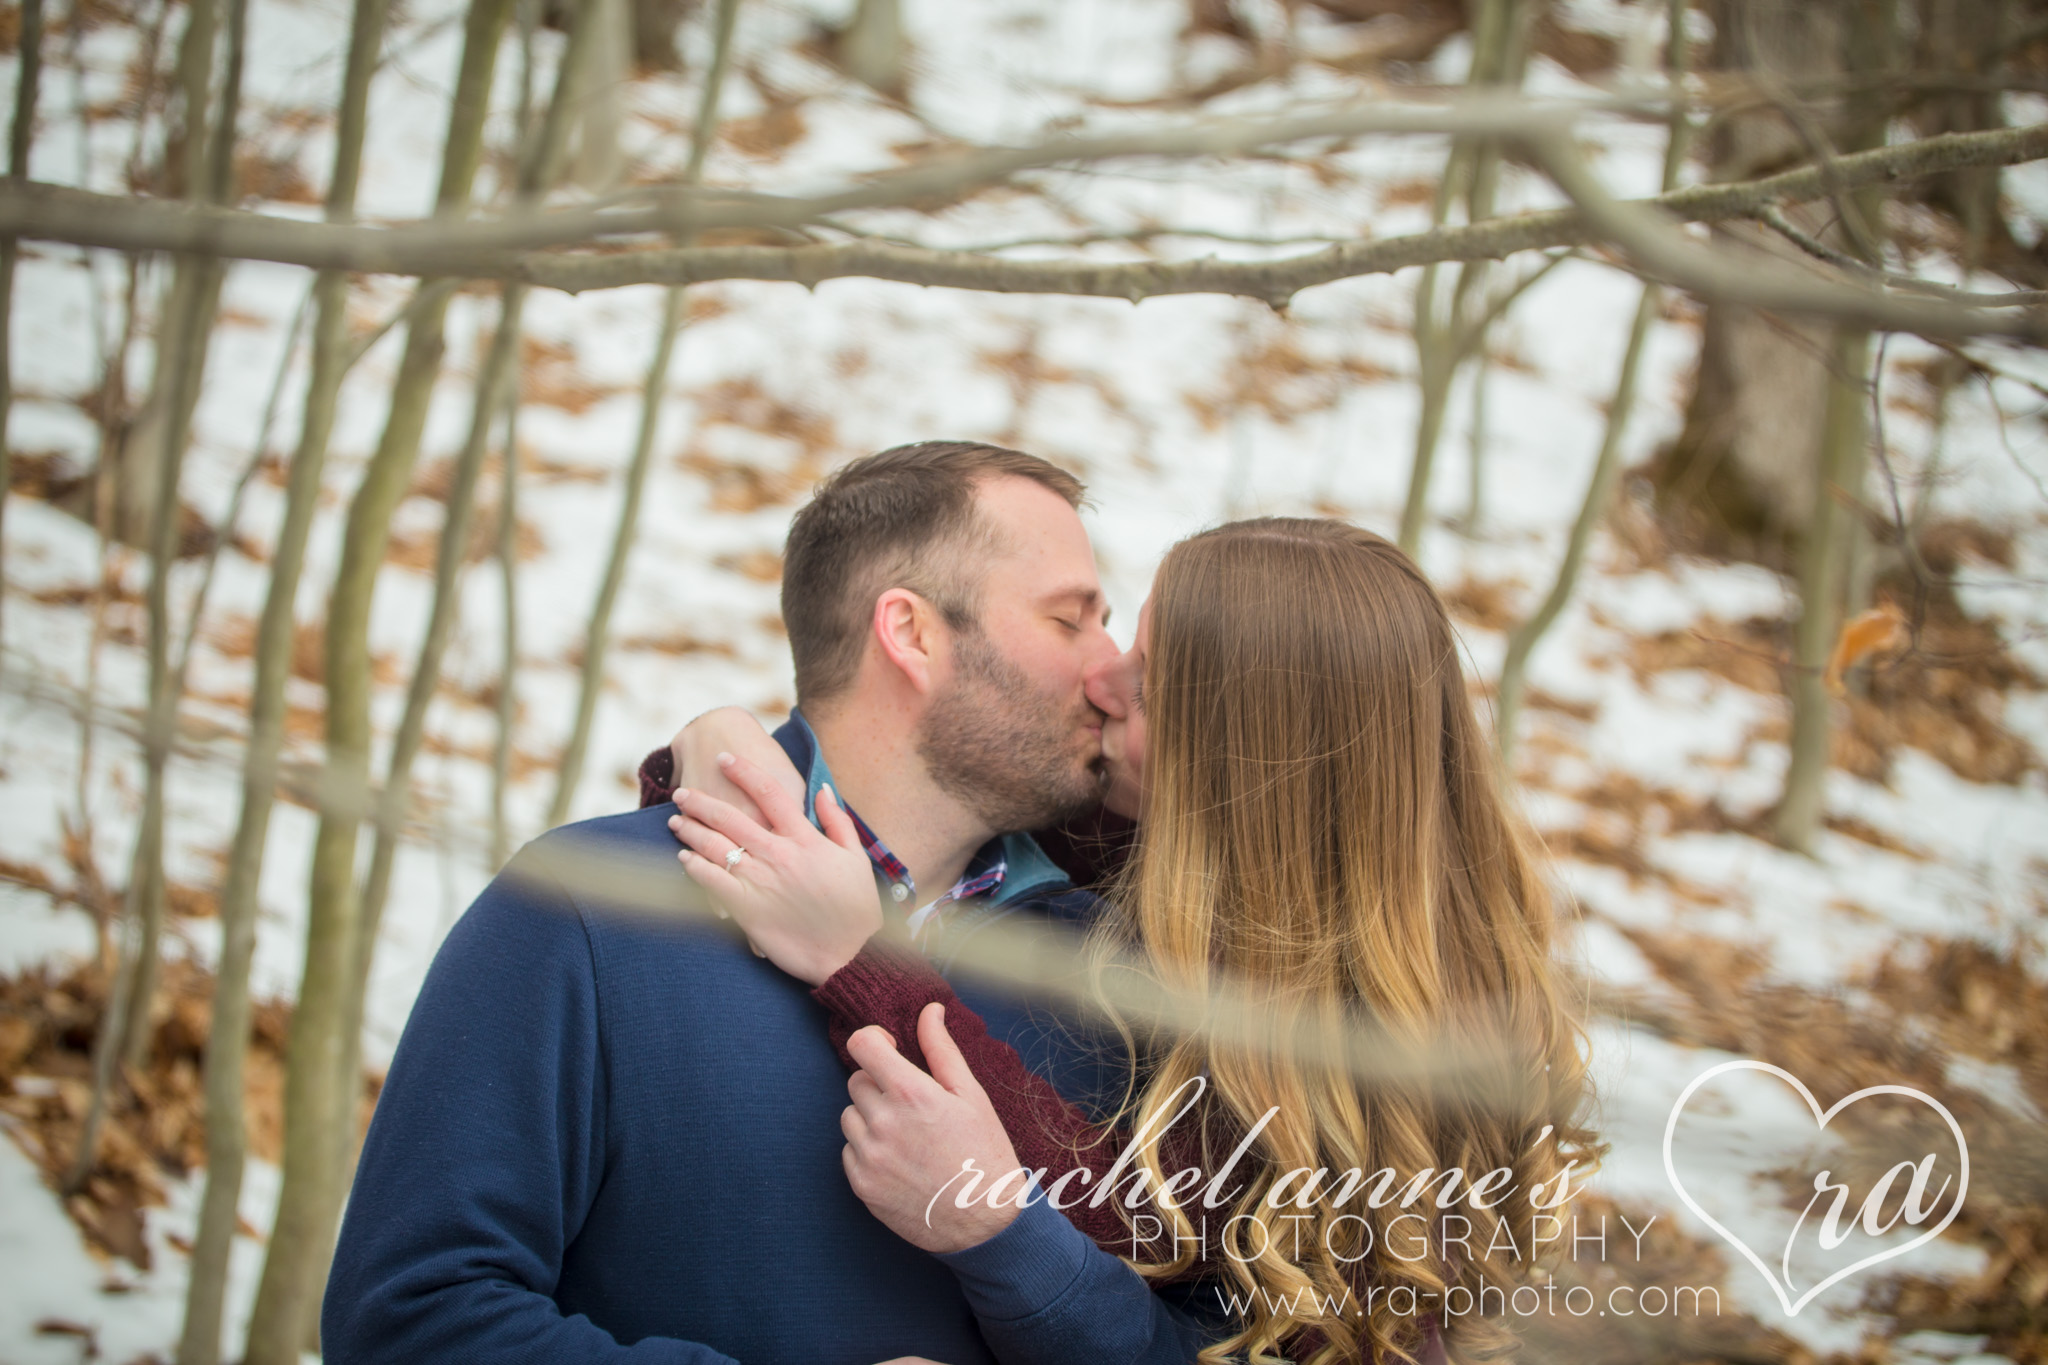 034-JKM-DUBOIS-PA-ENGAGEMENT-PHOTOGRAPHY.jpg